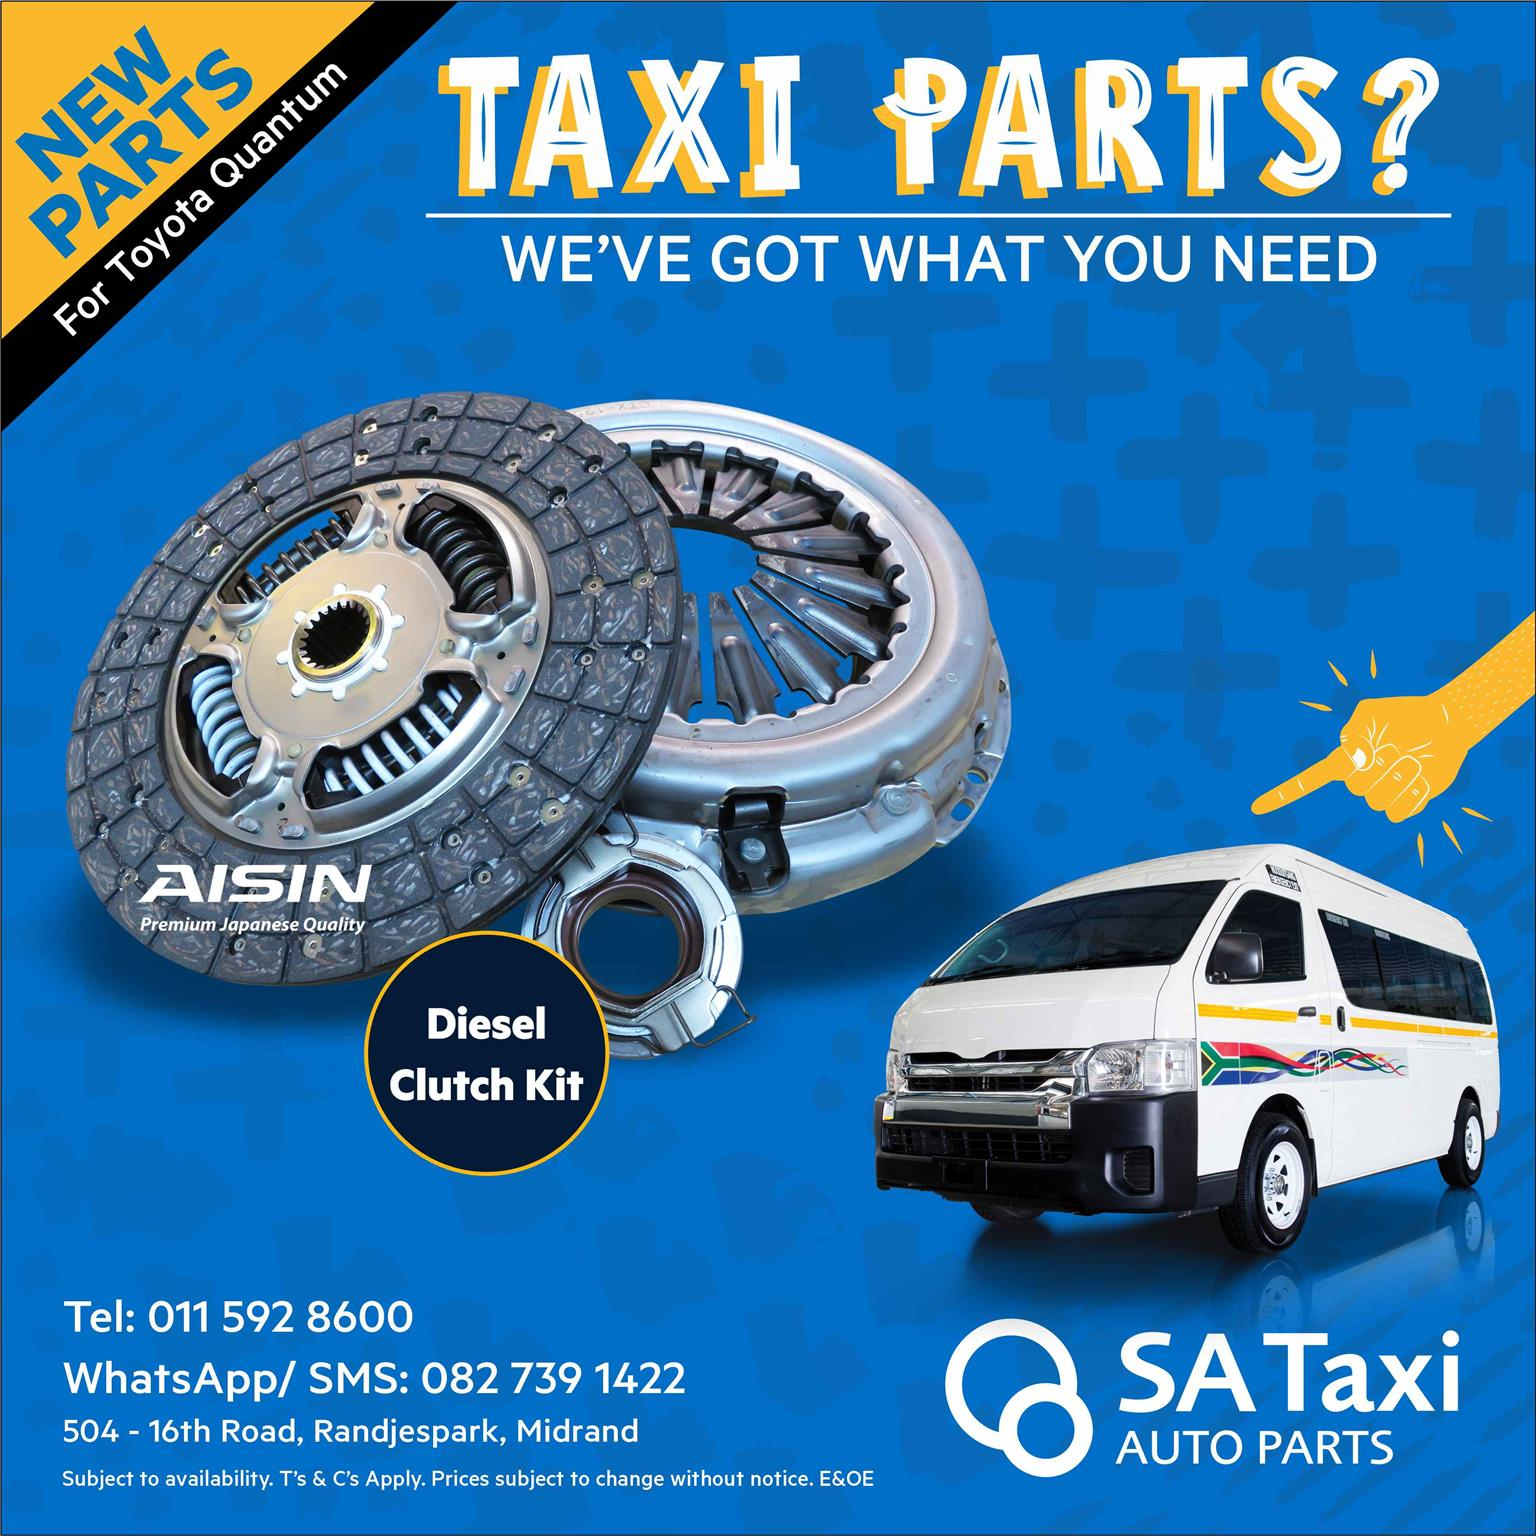 NEW Diesel Clutch Kit 2.5 2KD suitable for Toyota Quantum - SA Taxi Auto Parts quality taxi spares